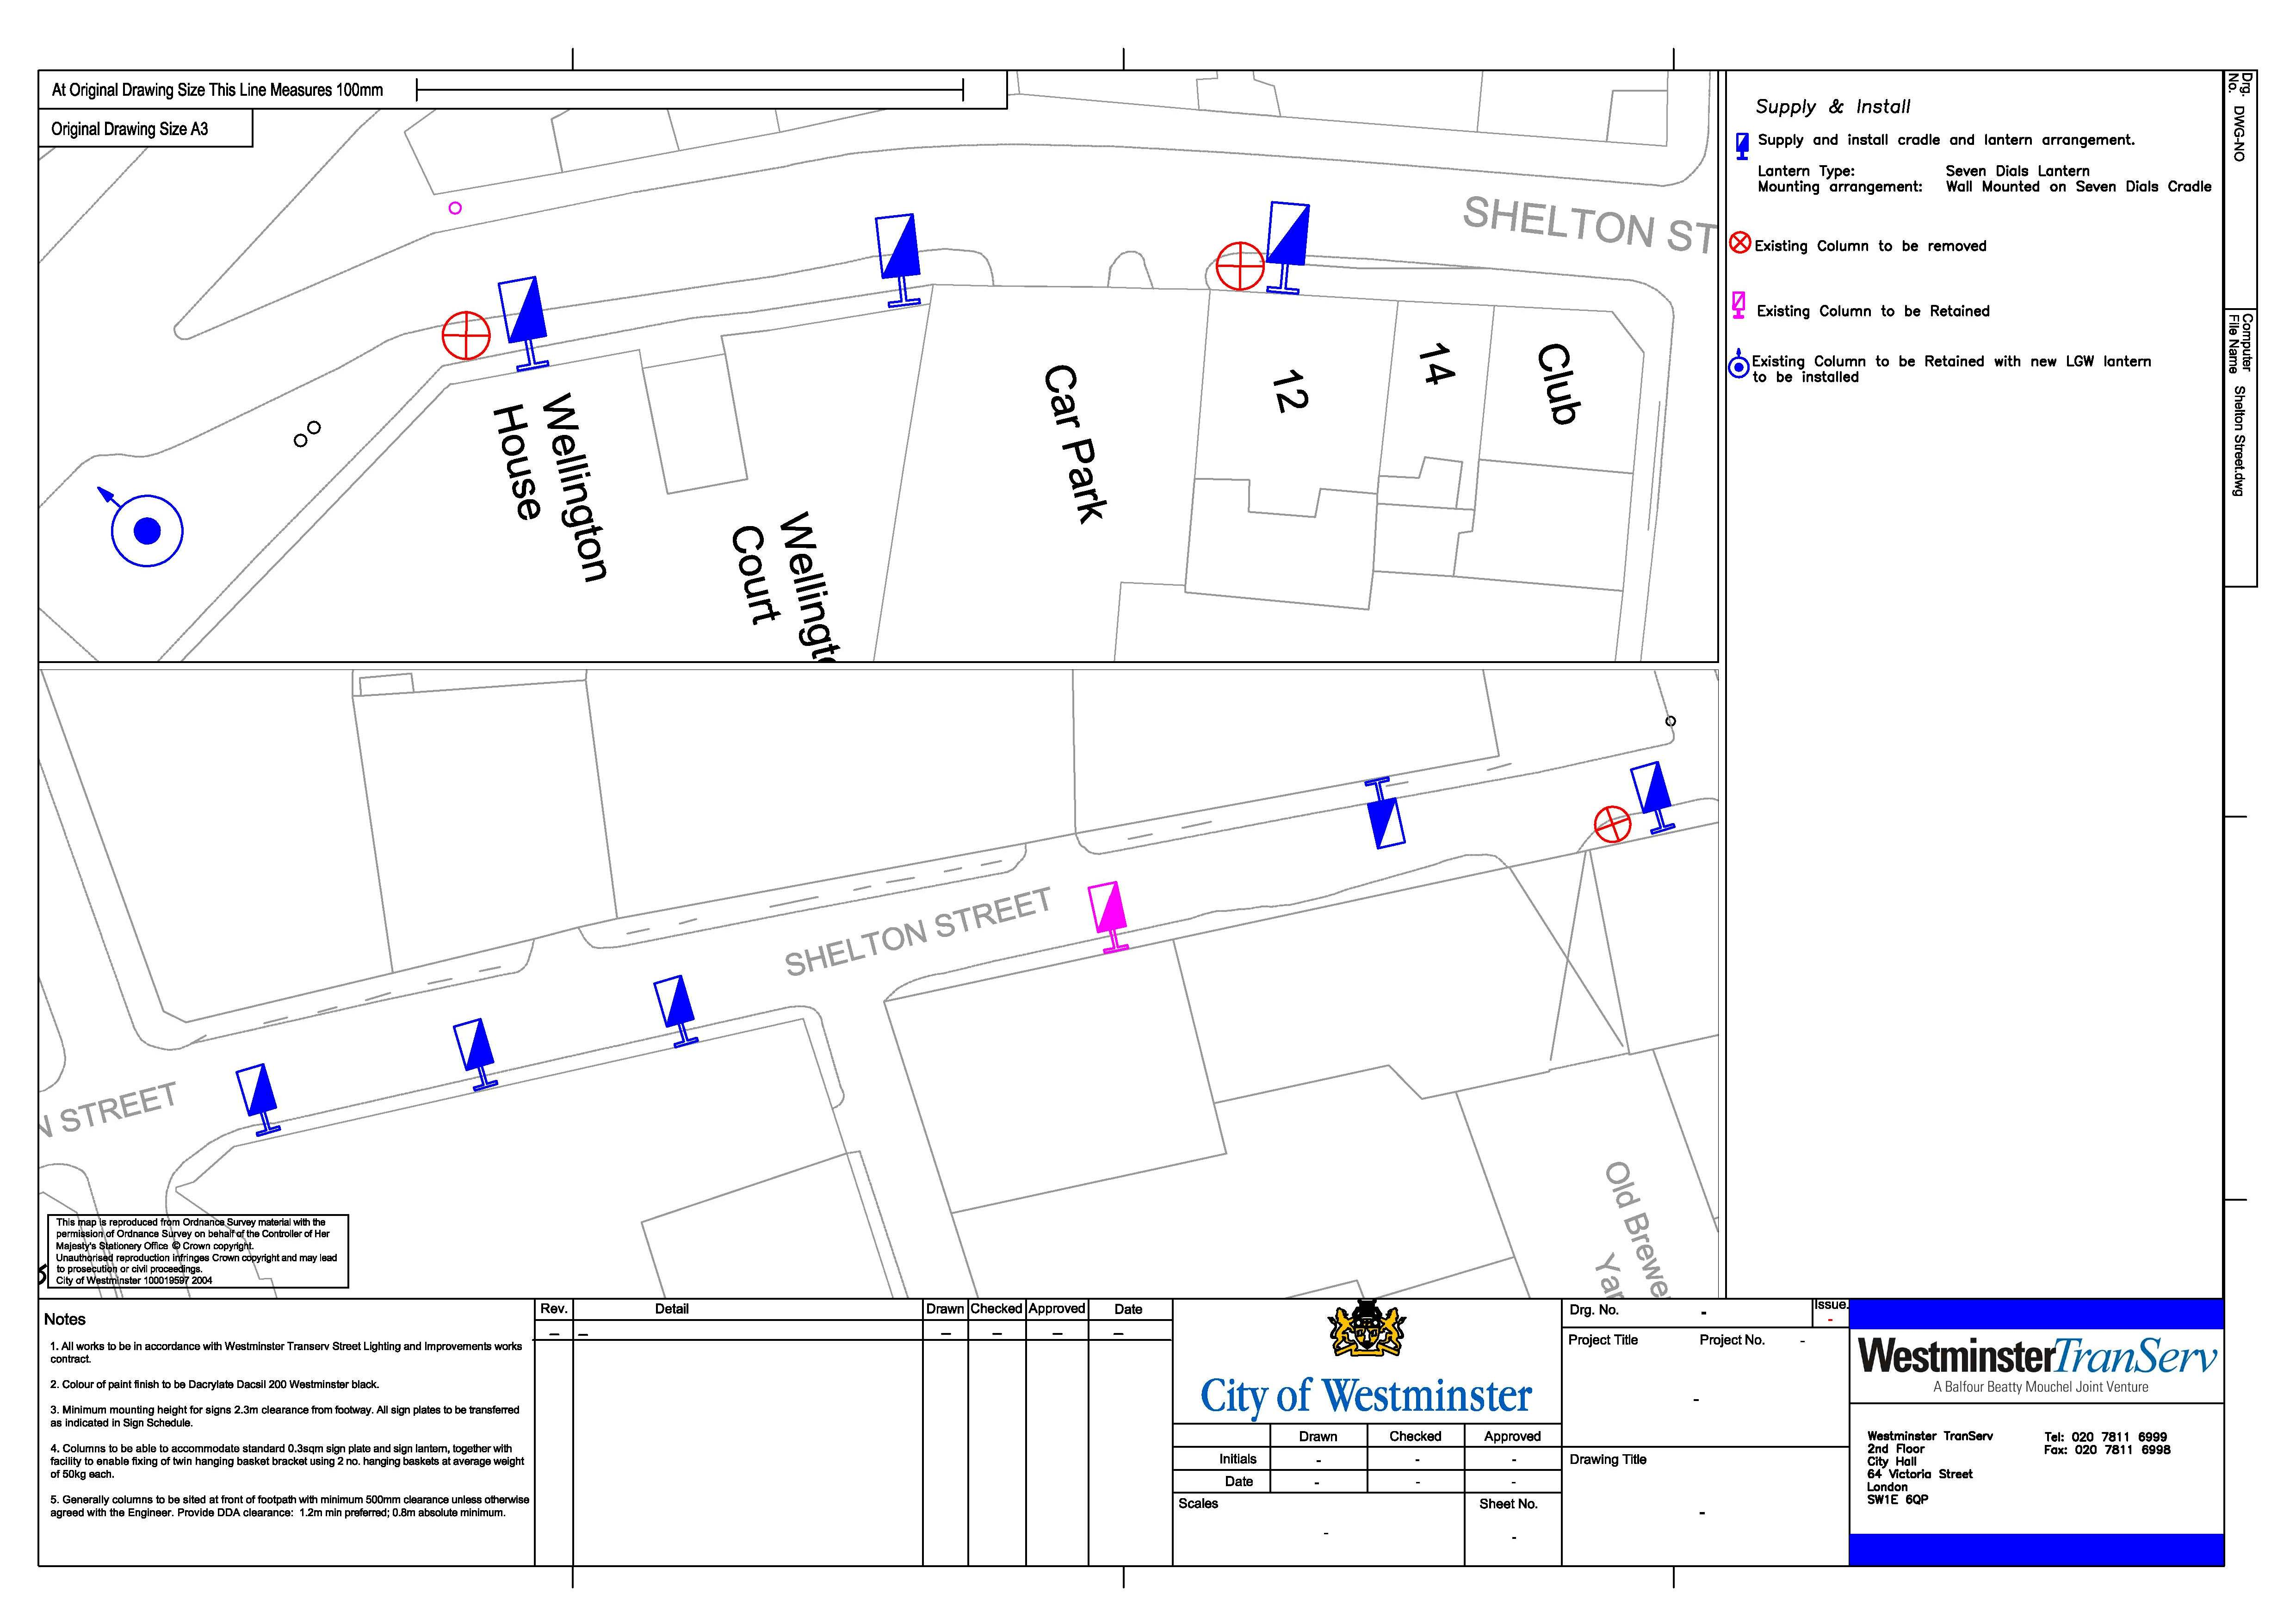 Mapping lantern positions in Westminster streets.